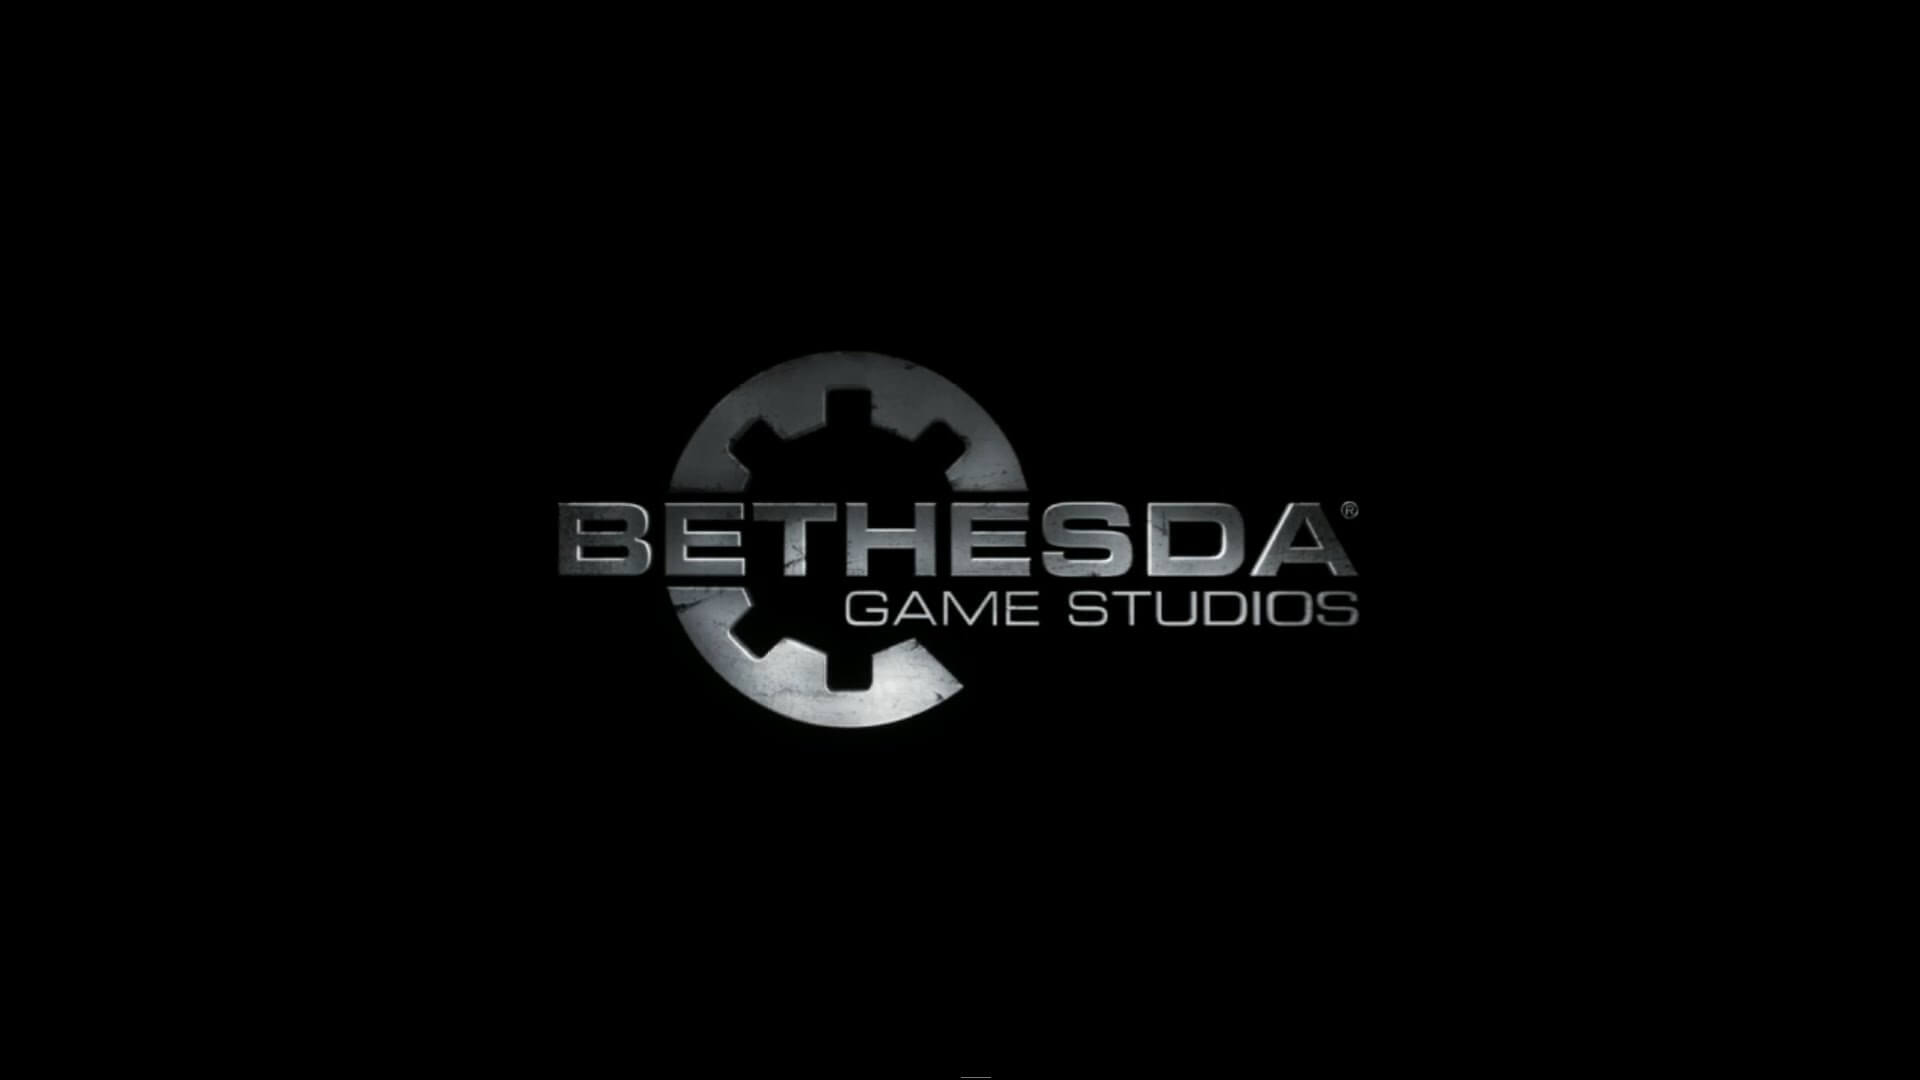 Bethesda's Free-to-Play AAA Game Could Include Microtransactions